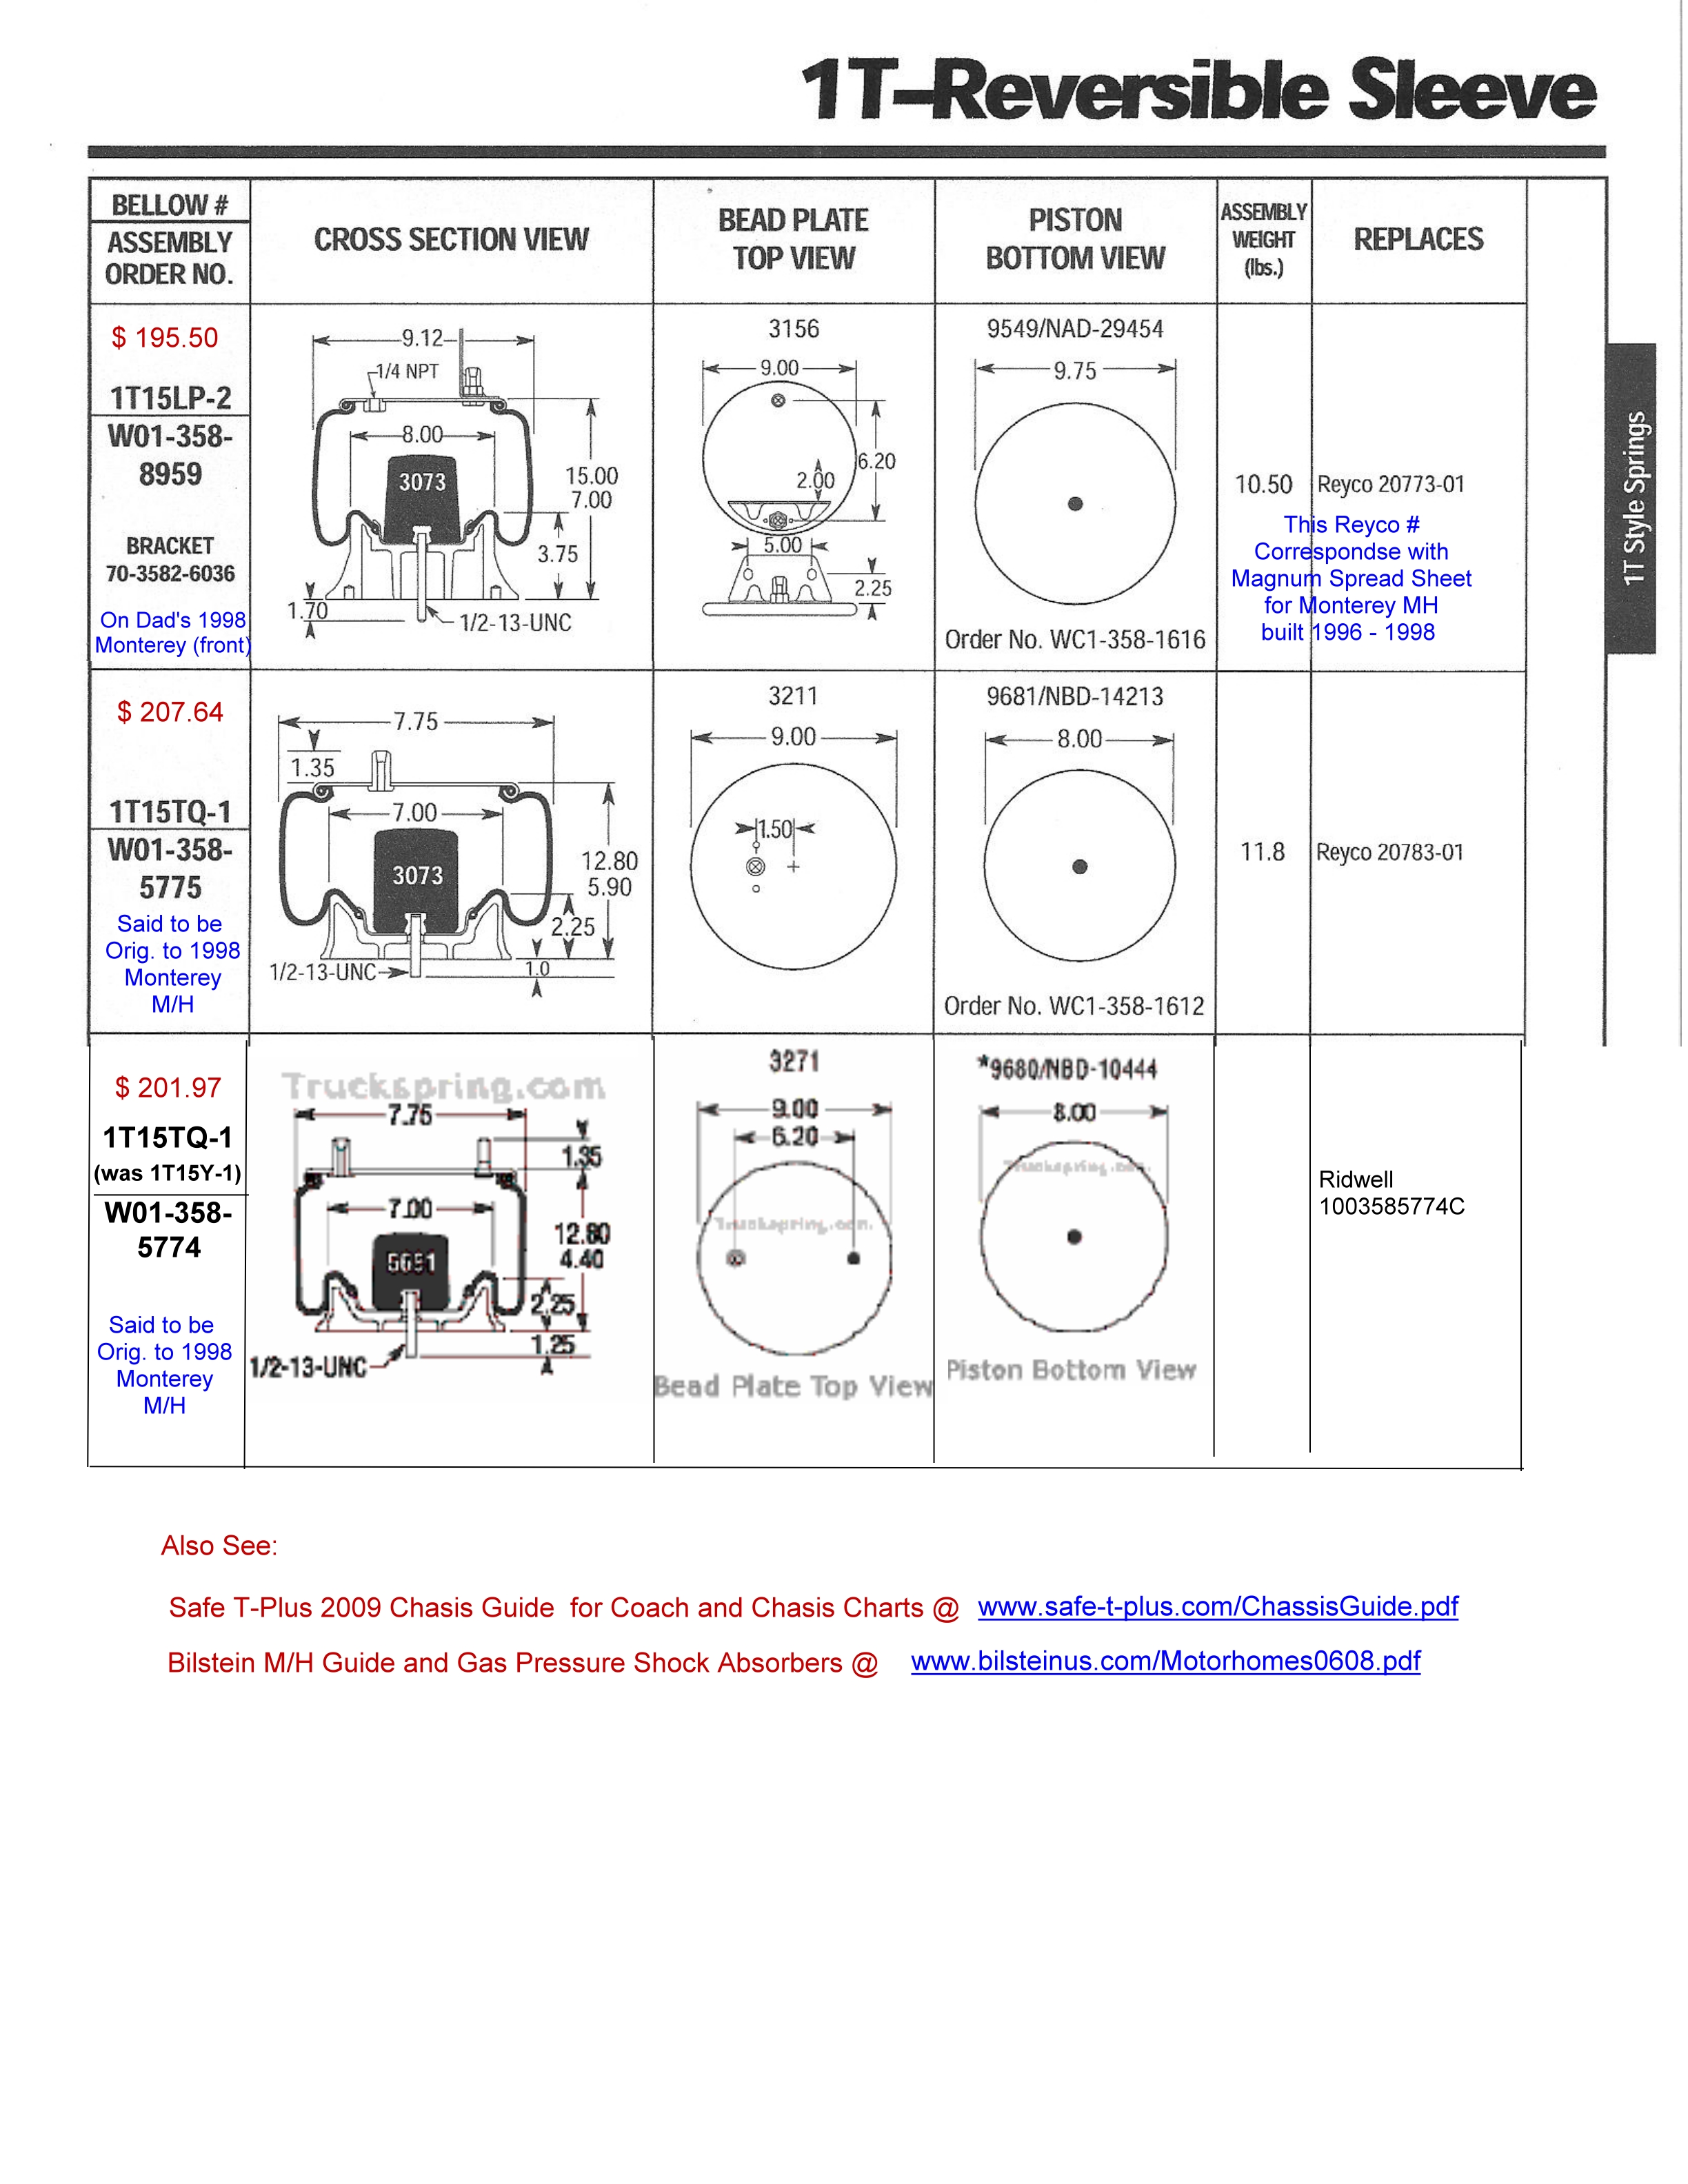 1998 Beaver Monterey Coach Air Spring ID Chart beaver info page Solenoid Wiring Diagram at panicattacktreatment.co